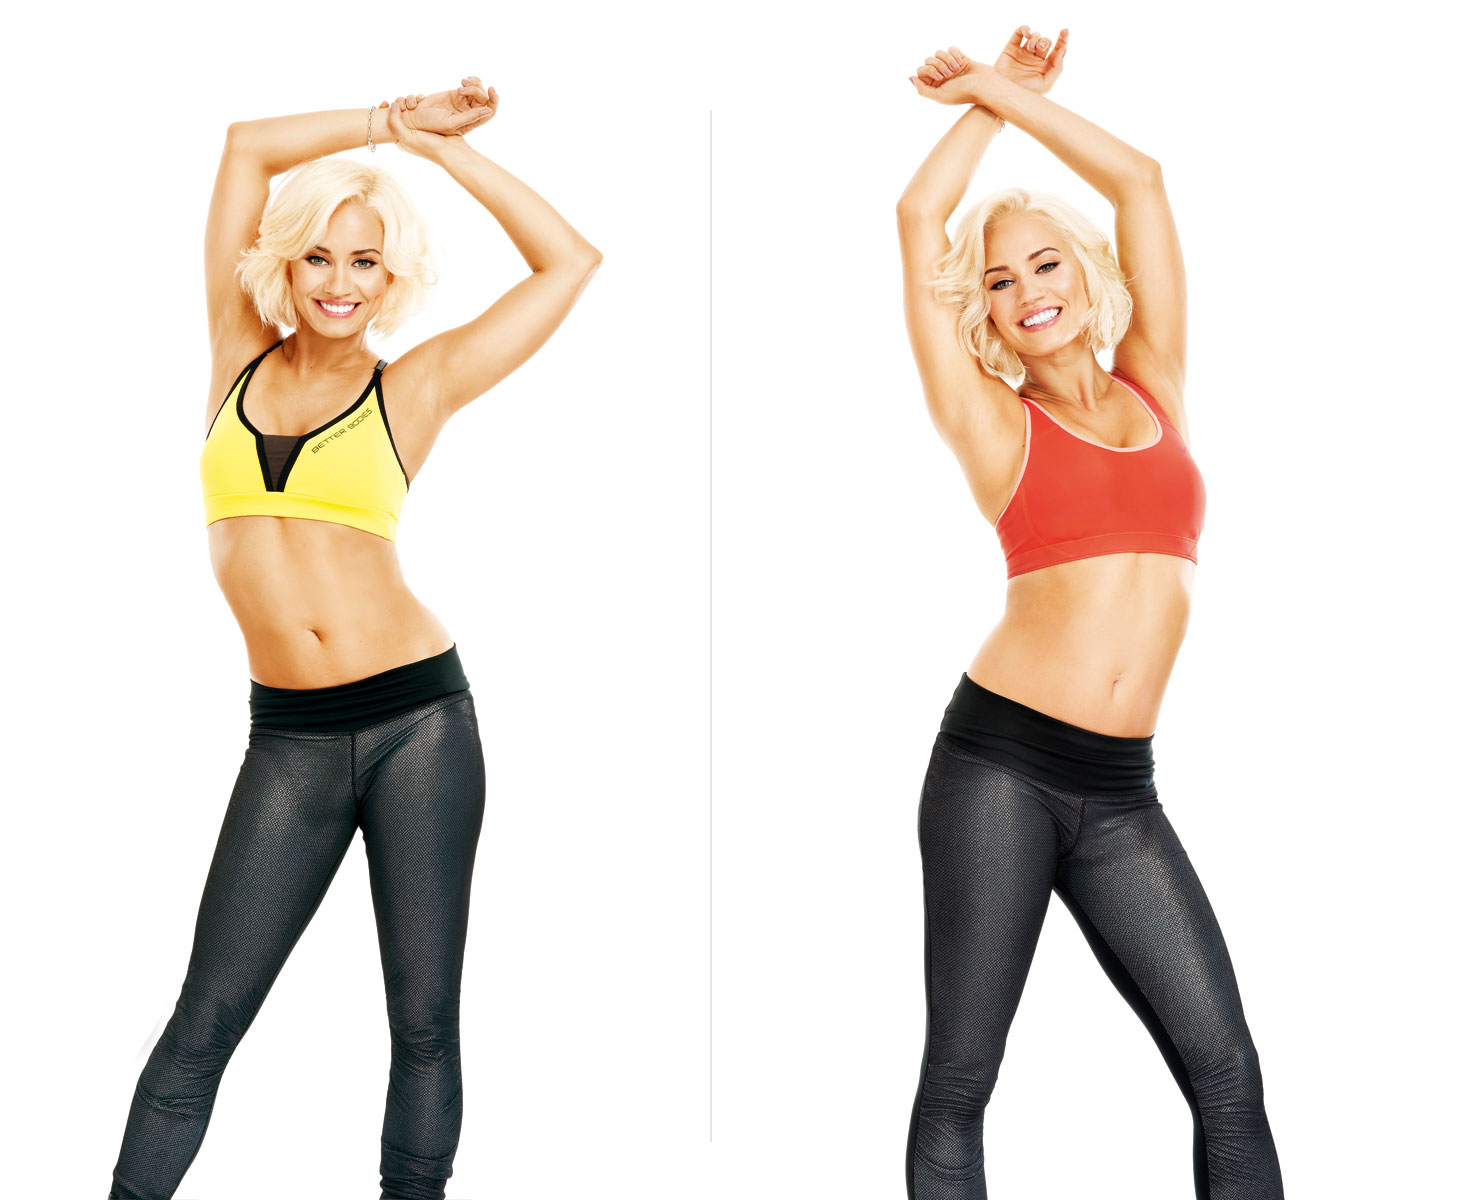 Kimberly Wyatt shot for Your Fitness